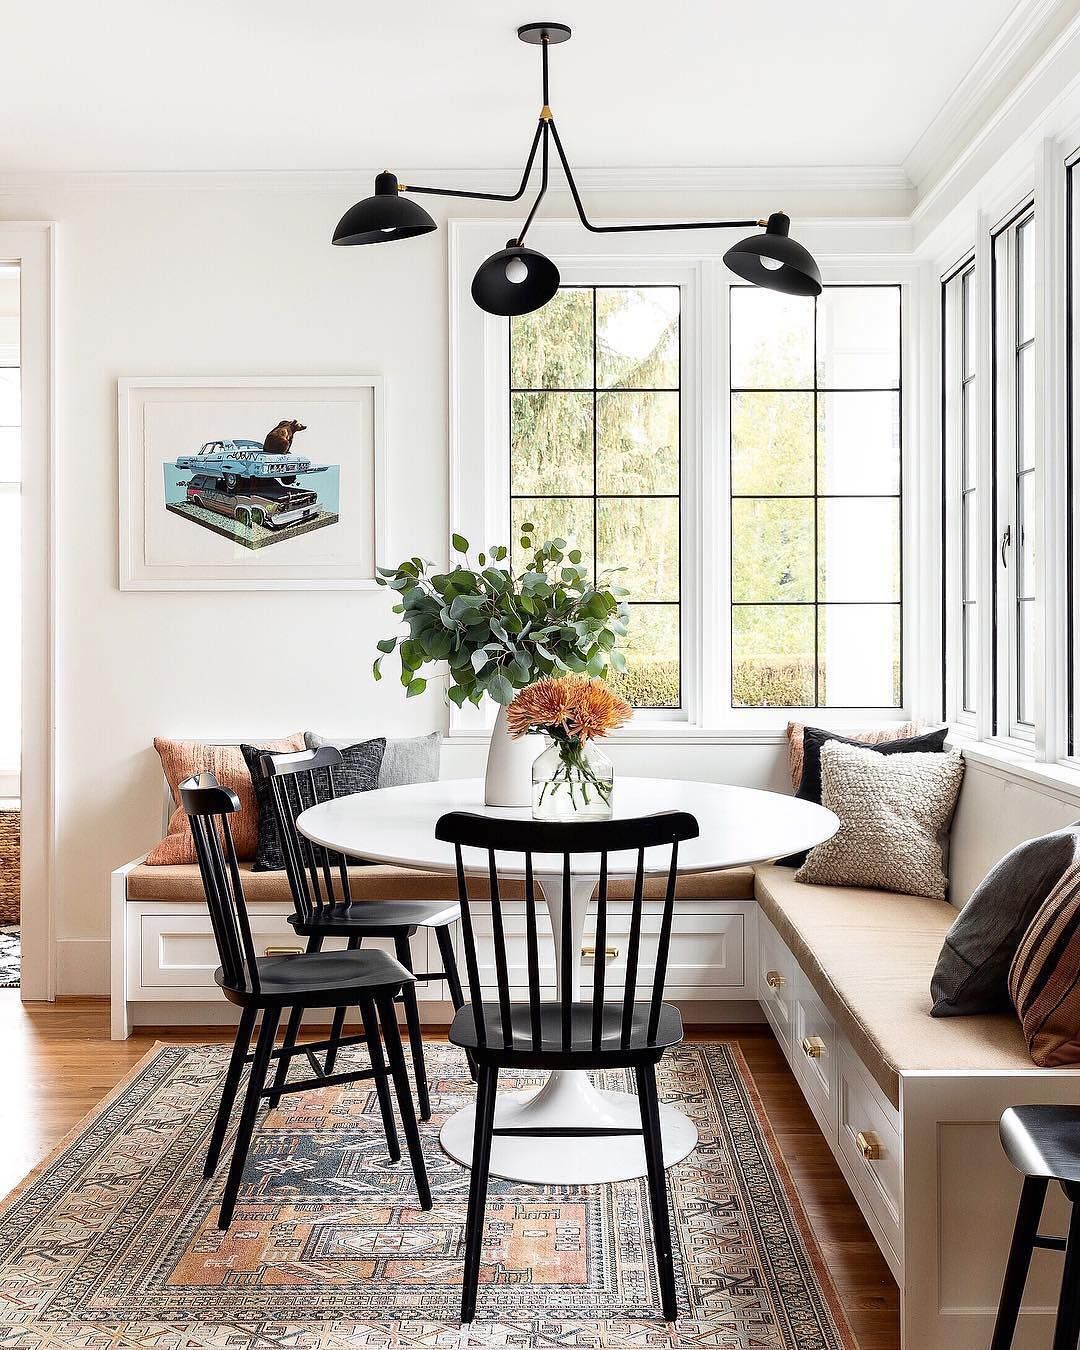 Hgtv Canada On Instagram This Breakfast Nook Is Everything What Are Your Plans For Familyday Designed By Dining Room Design Dining Nook Home Decor